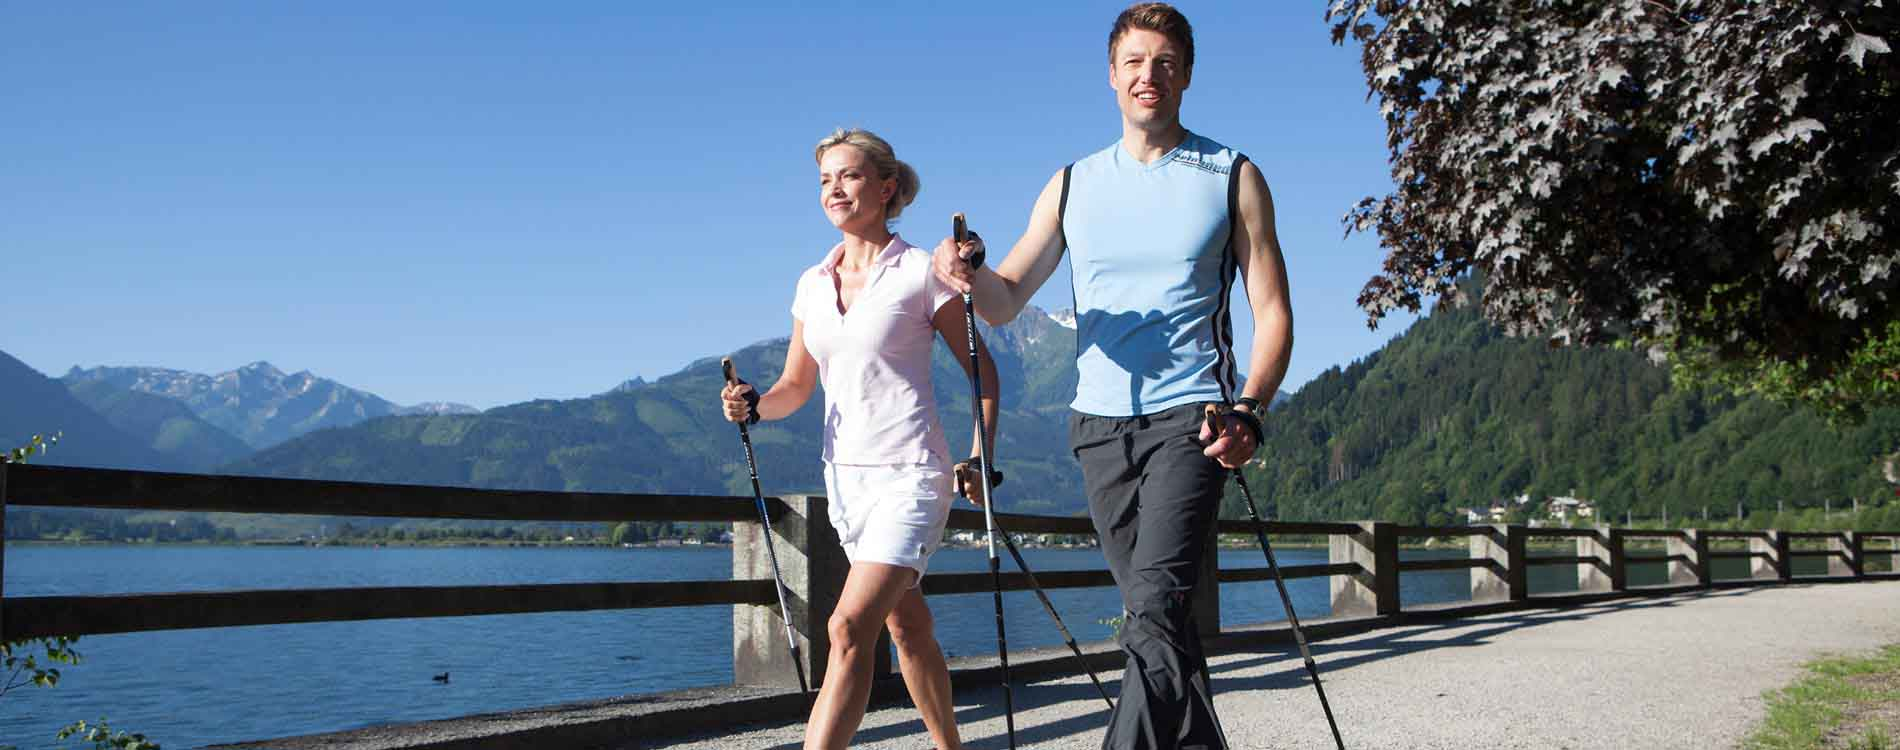 ACTIVE Alpine holiday in the SalzburgerLand Sporthotel Alpenblick Zell am See Austria